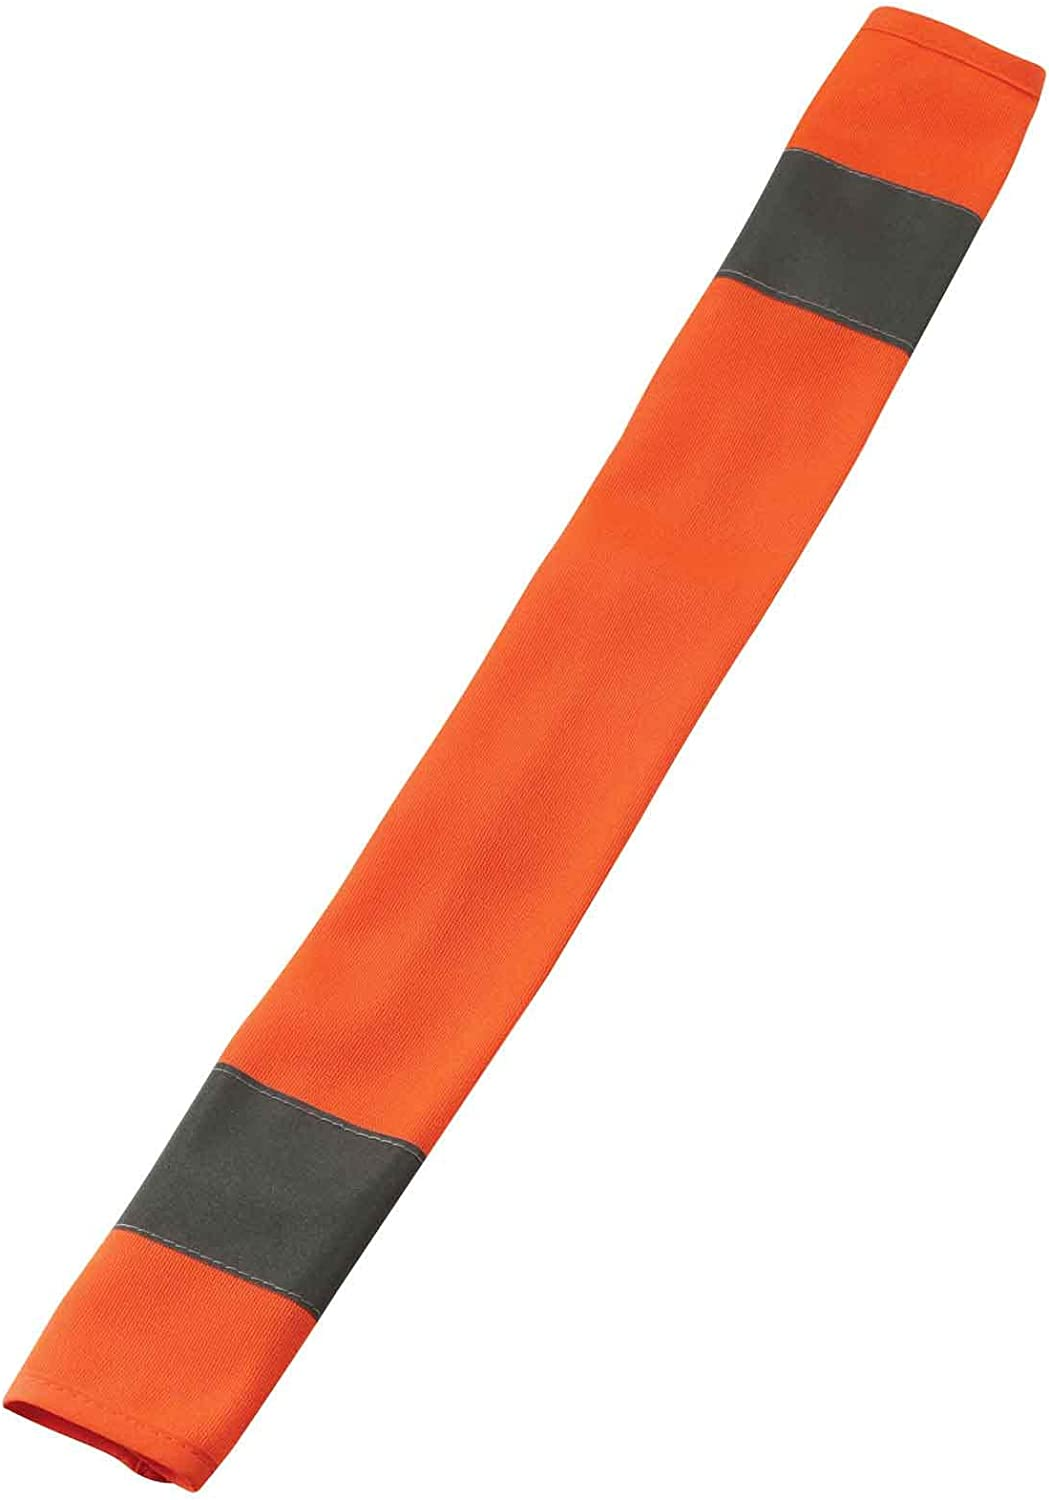 LUX-900 OccuNomix Hi-Visibility Seat Belt Cover 10 PK, High Vis Orange